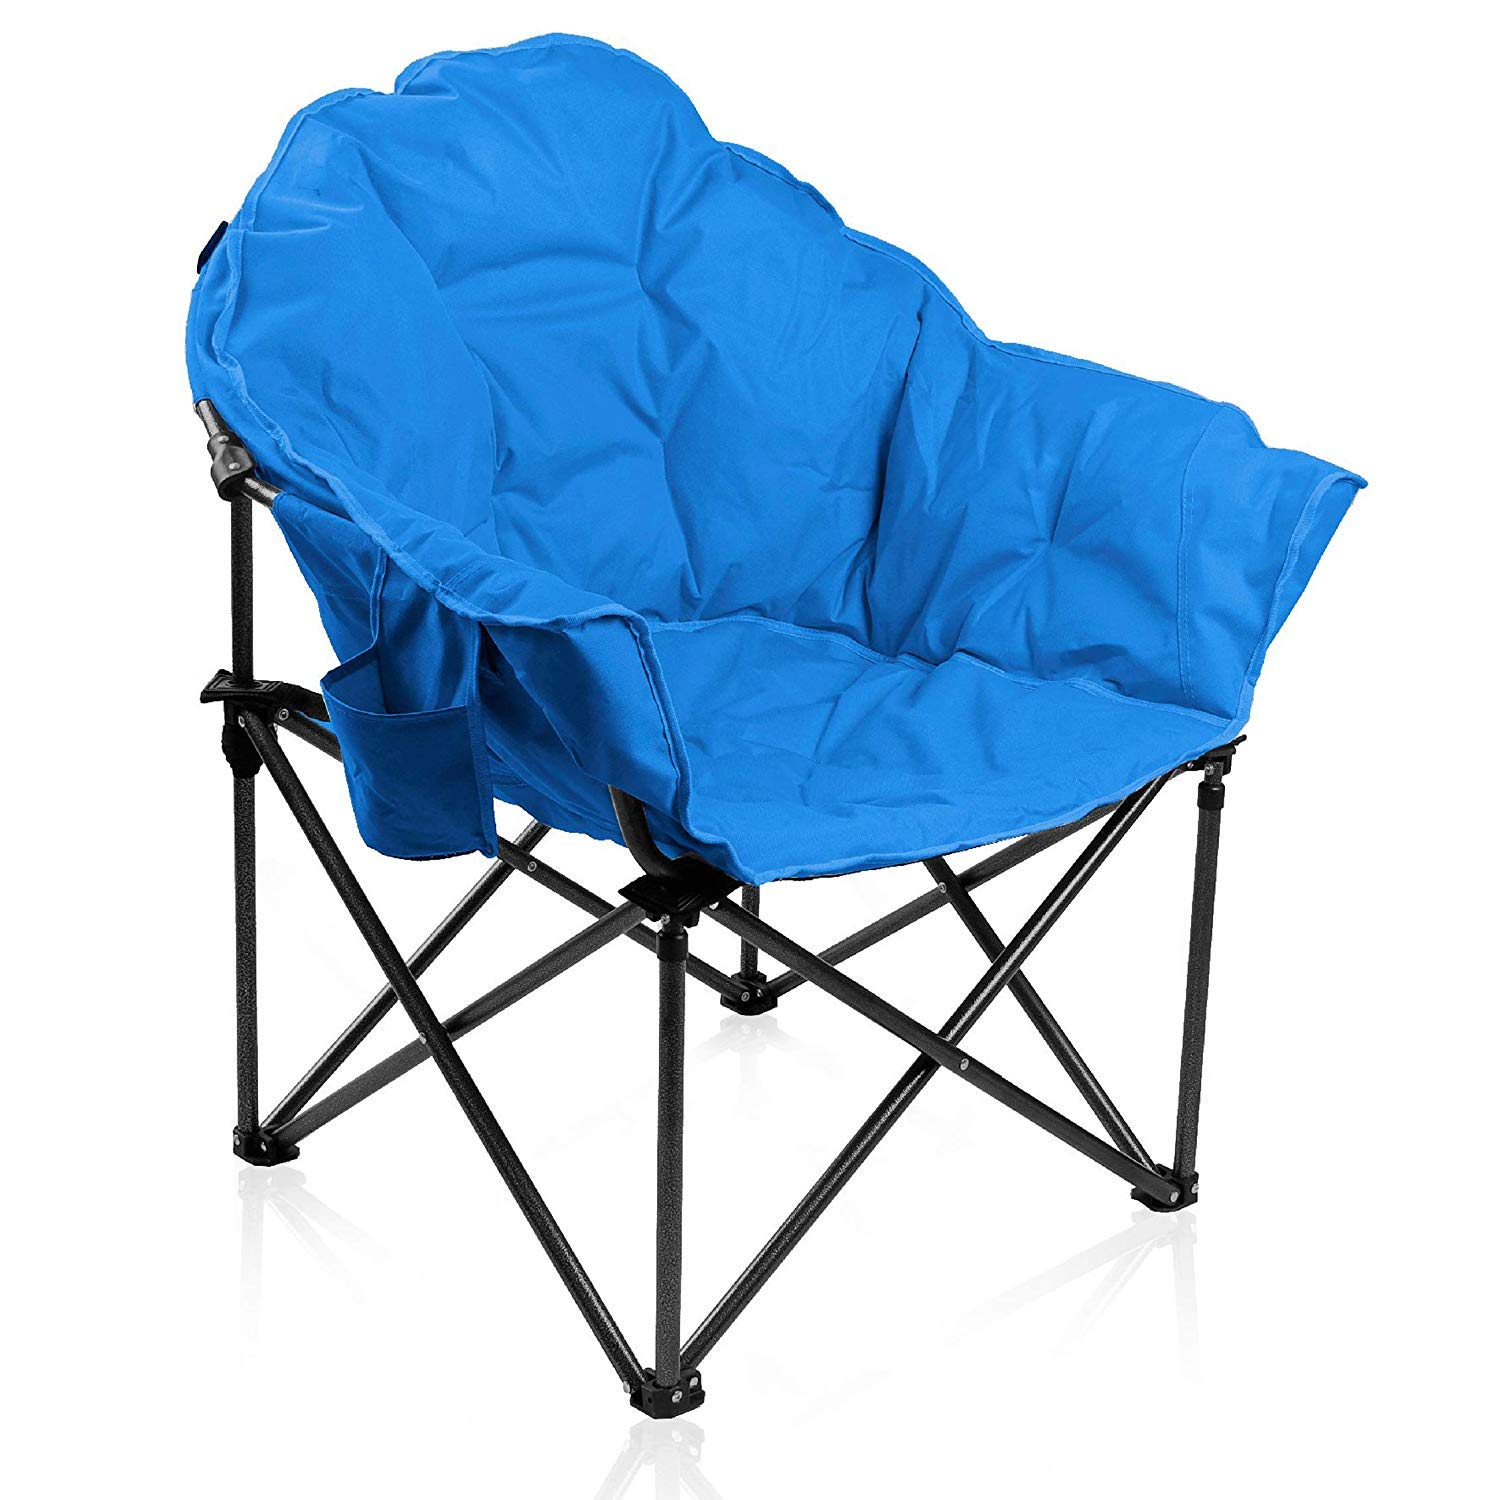 ALPHA CAMP Oversized Camping Chairs Padded Moon Round ...